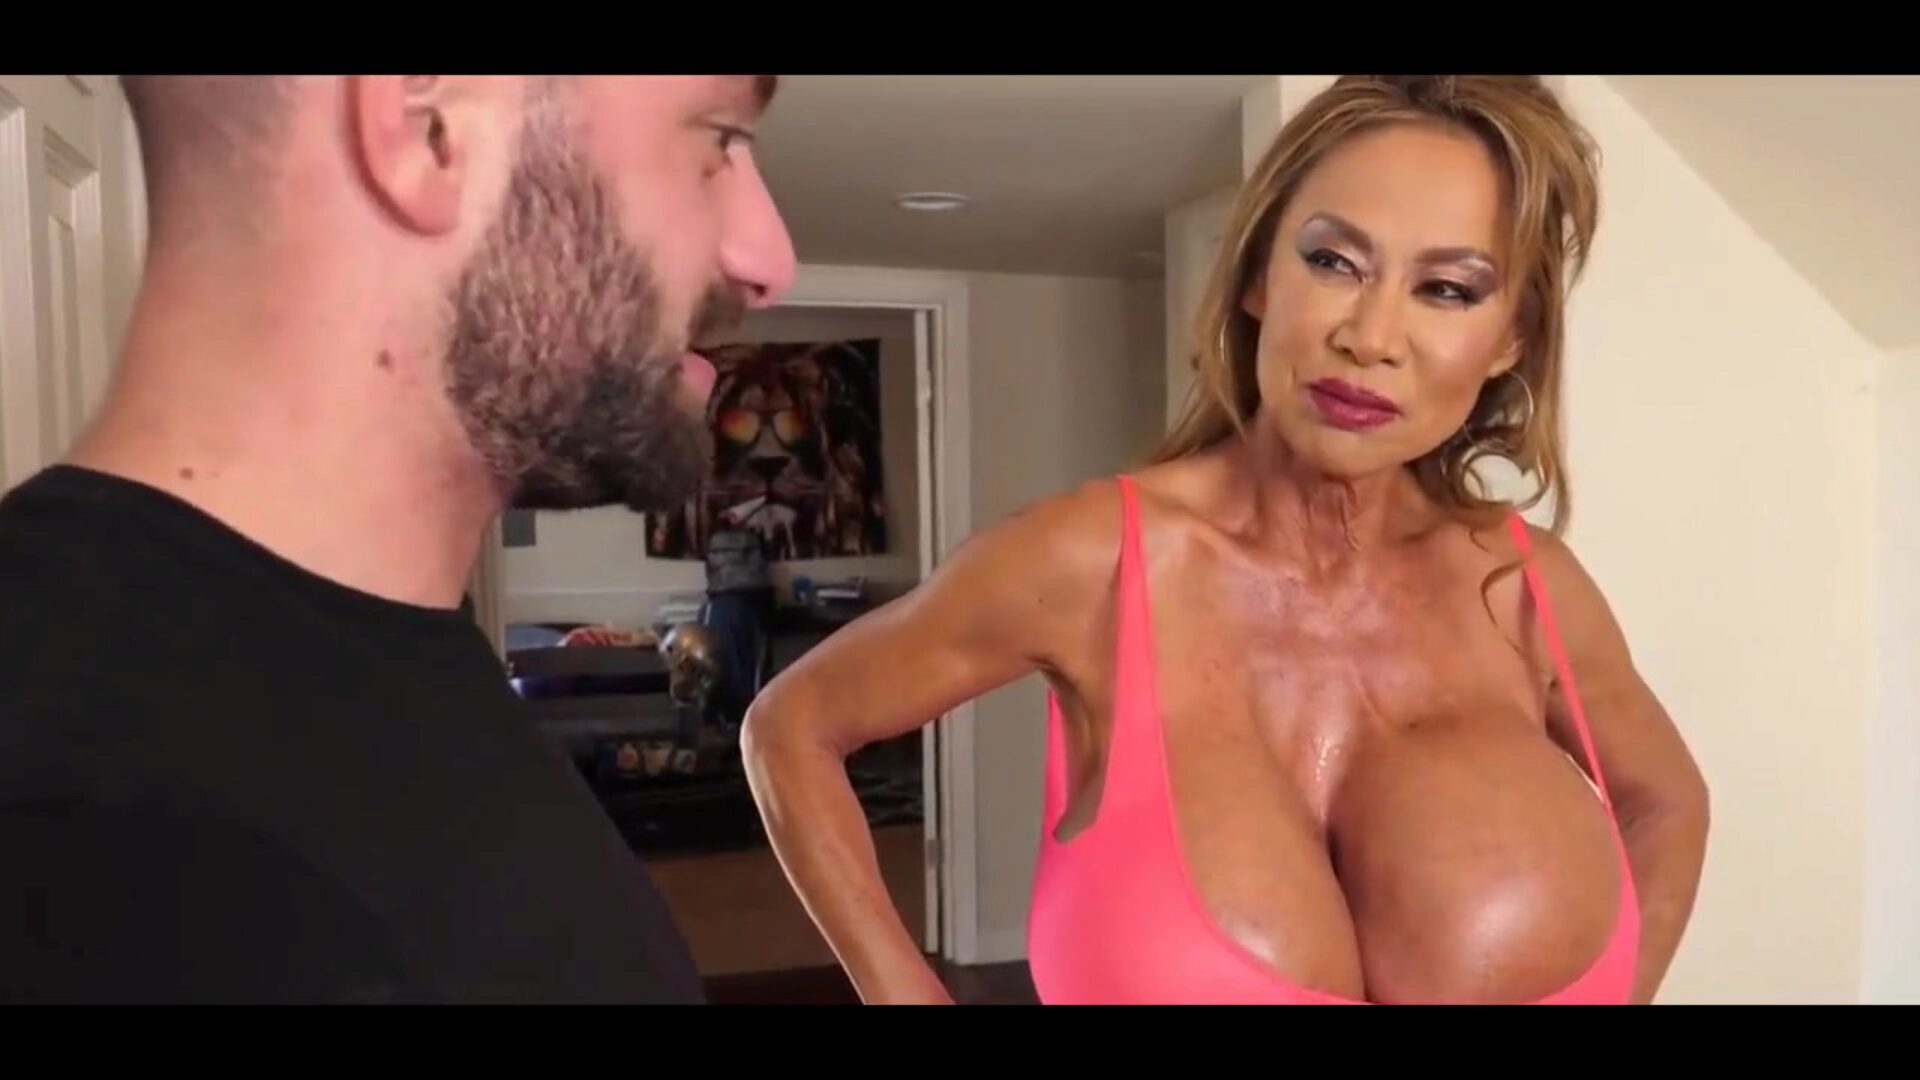 59 YO MOM FUCKS HER HORNY BWC STEPSON -B$R